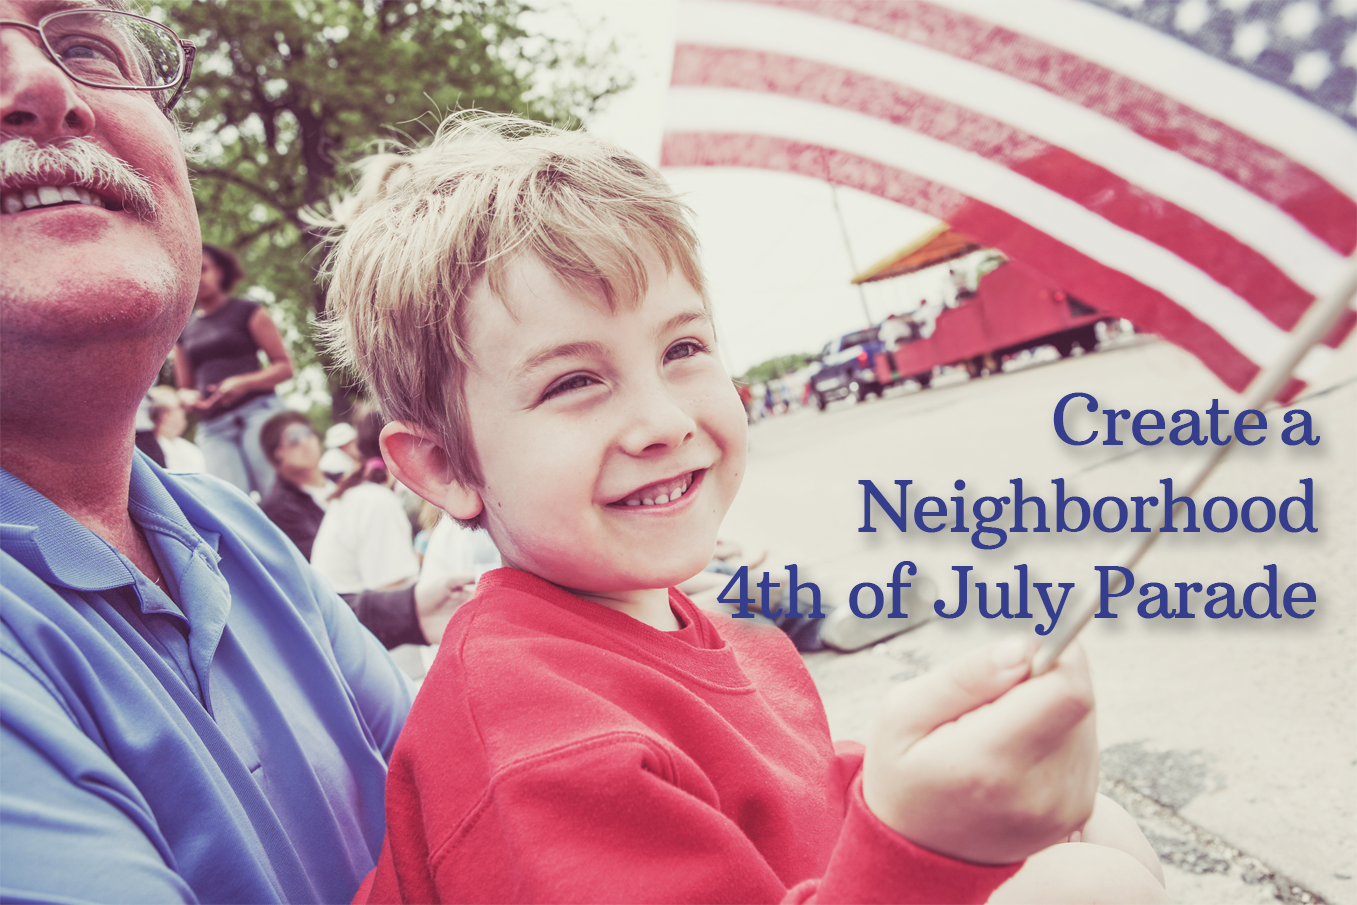 Create Your Own Neighborhood 4th of July Parade